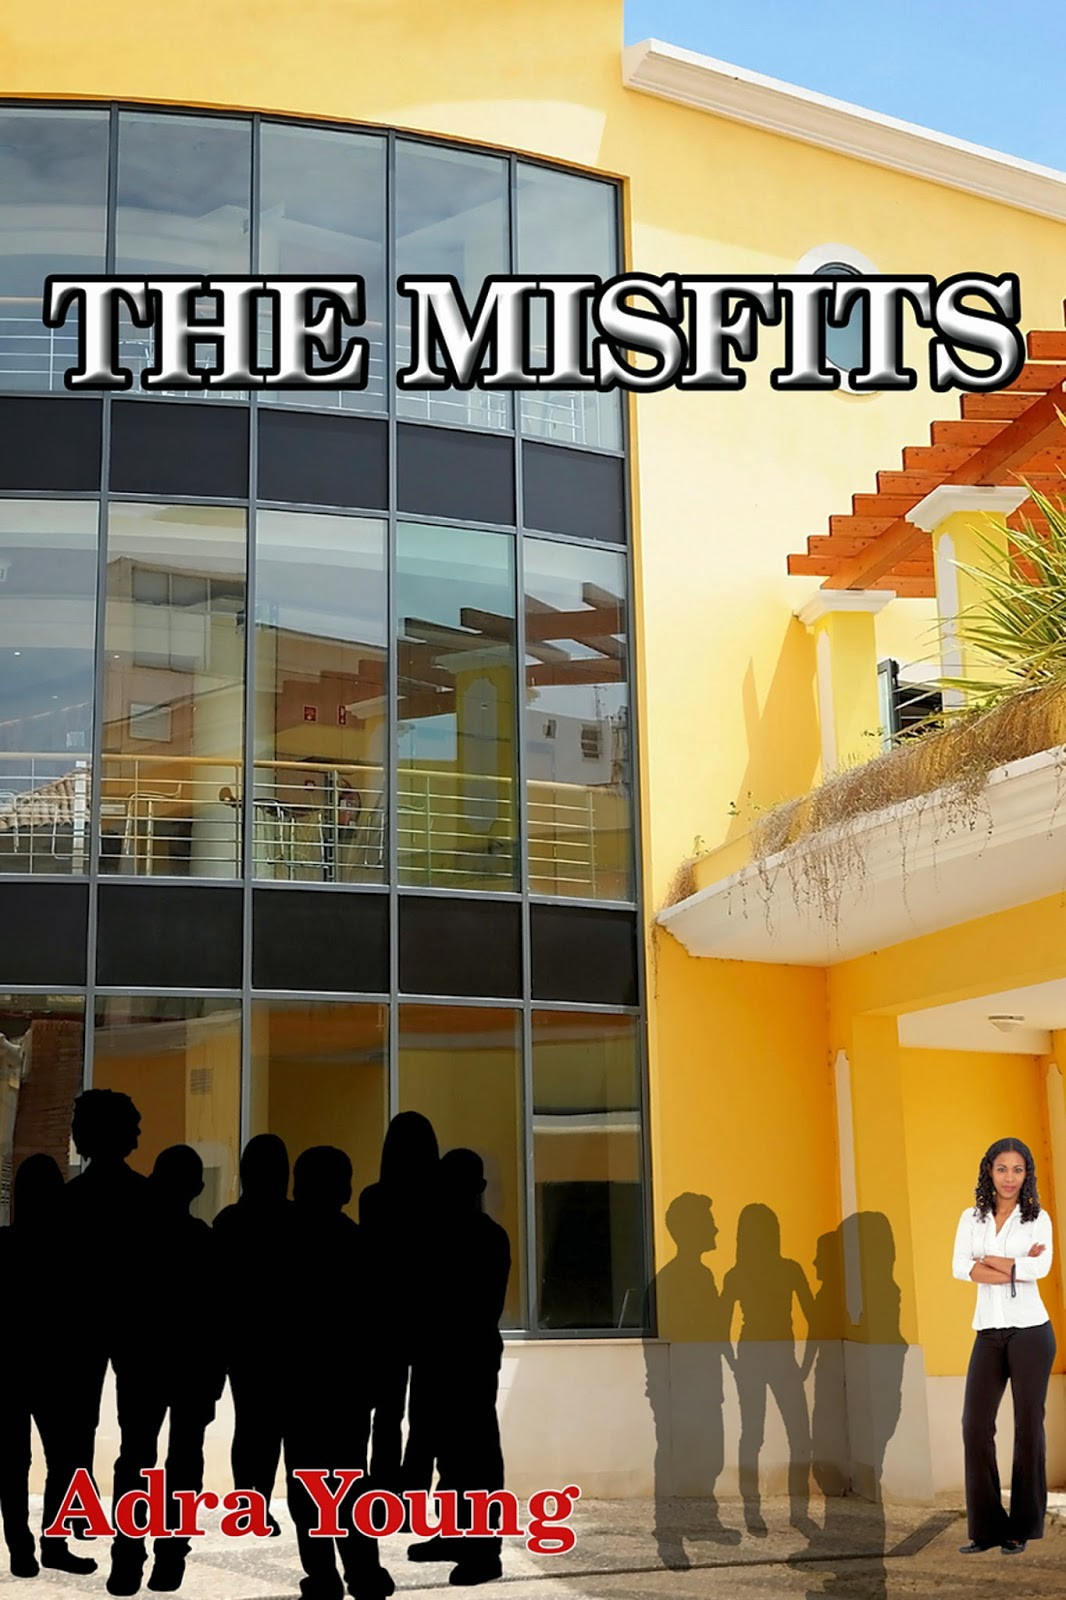 http://www.amazon.com/The-Misfits-Adra-Young-ebook/dp/B00E6U4LA0/ref=sr_1_1?ie=UTF8&qid=1395798723&sr=8-1&keywords=the+misfits+adra+young